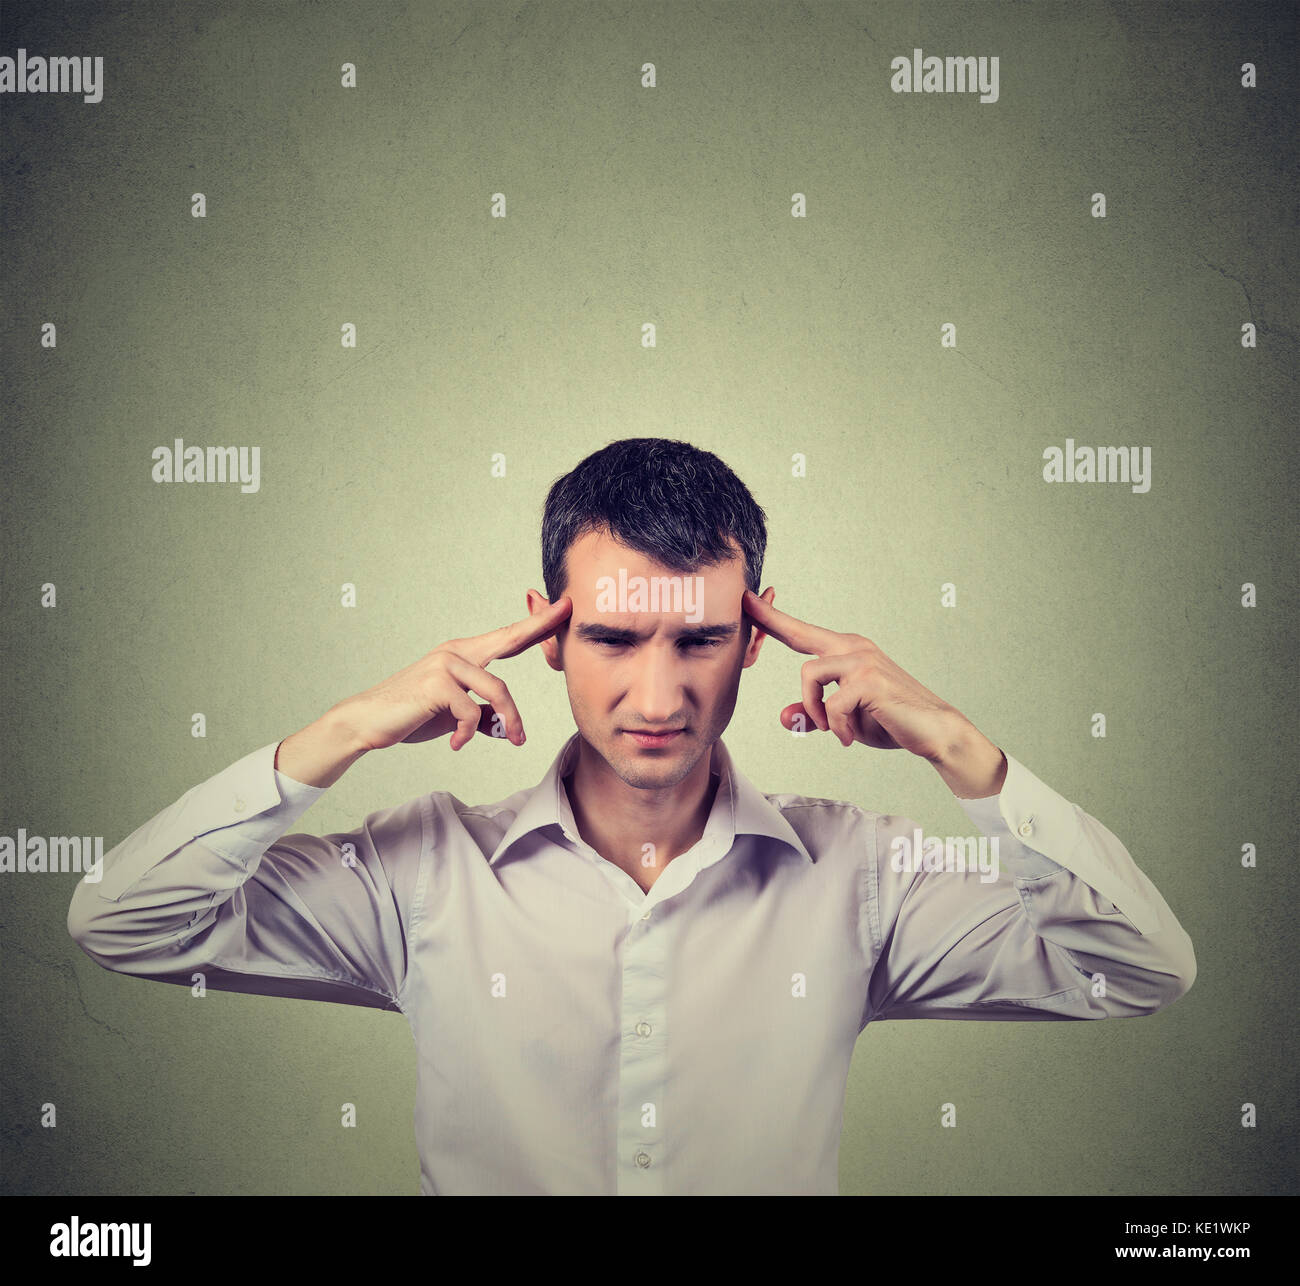 man thinking very intensely concentrating isolated on gray wall background - Stock Image